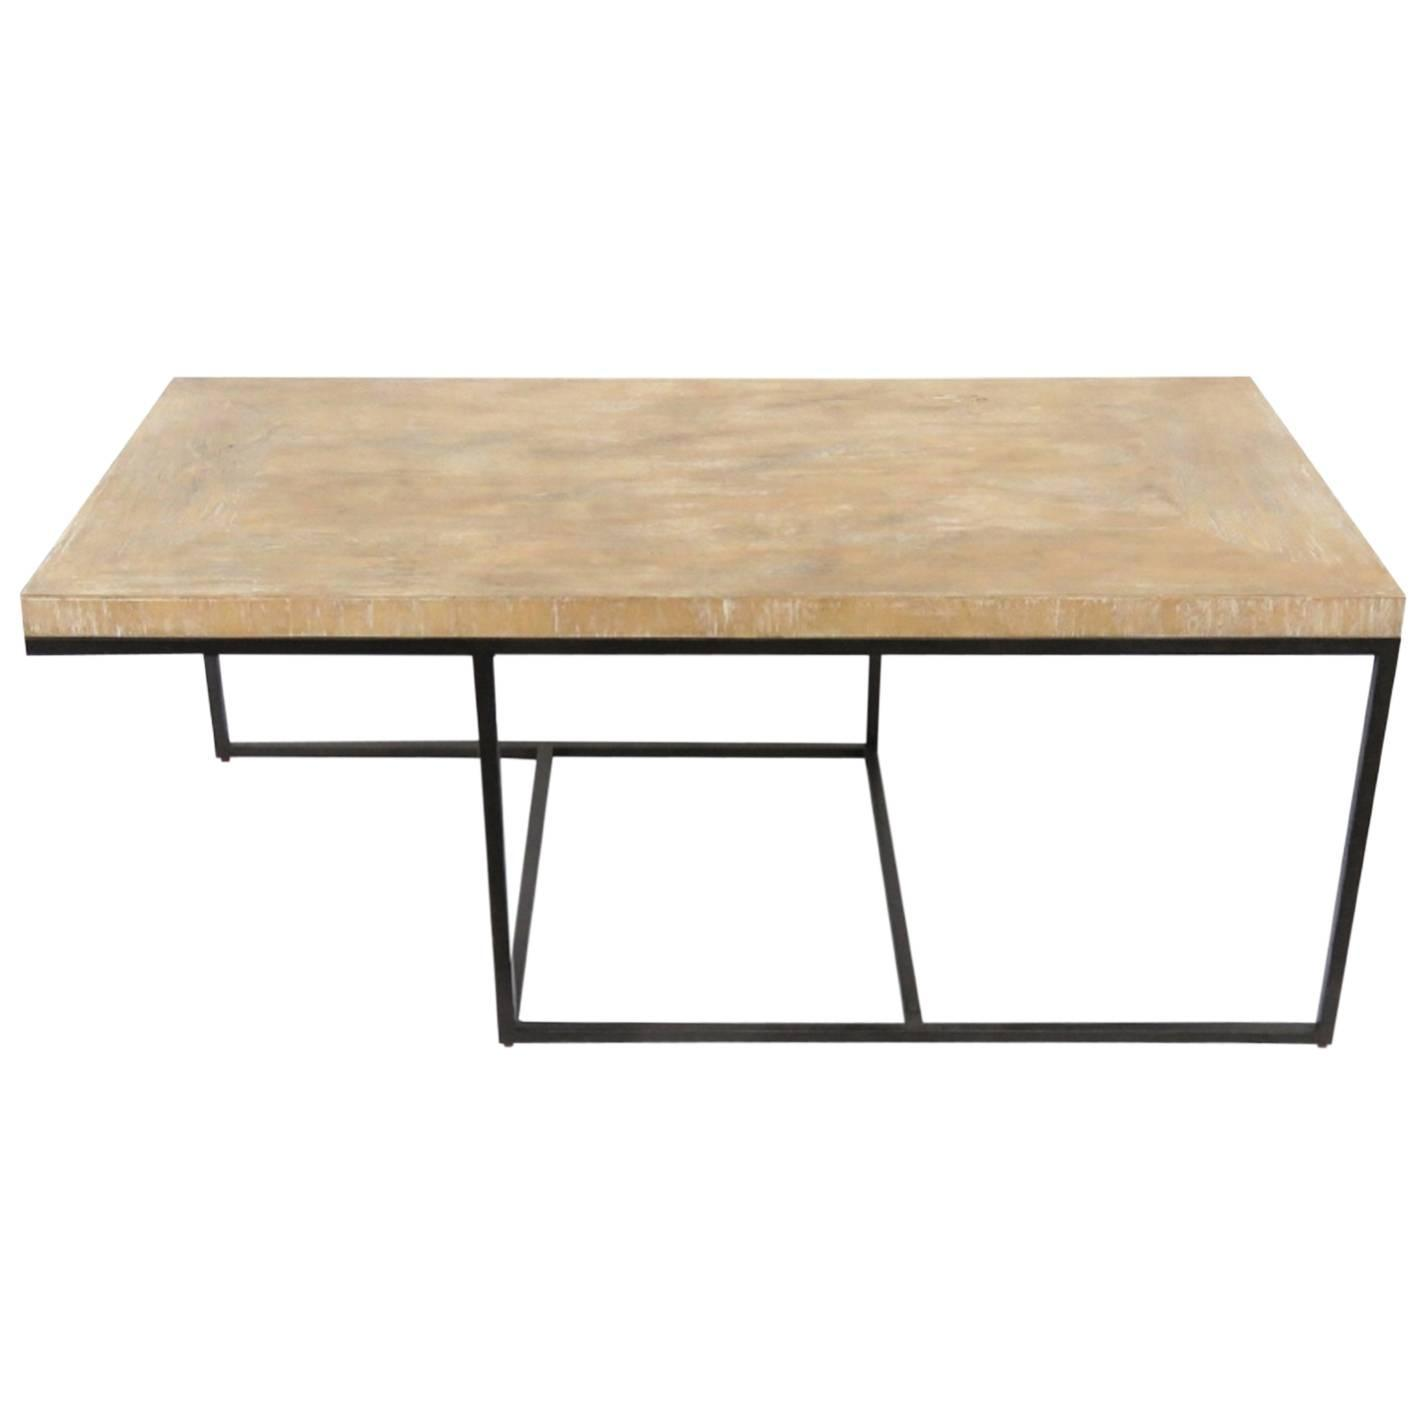 Modern Design Iron And Distressed Wood Coffee Table For Sale At 1stdibs